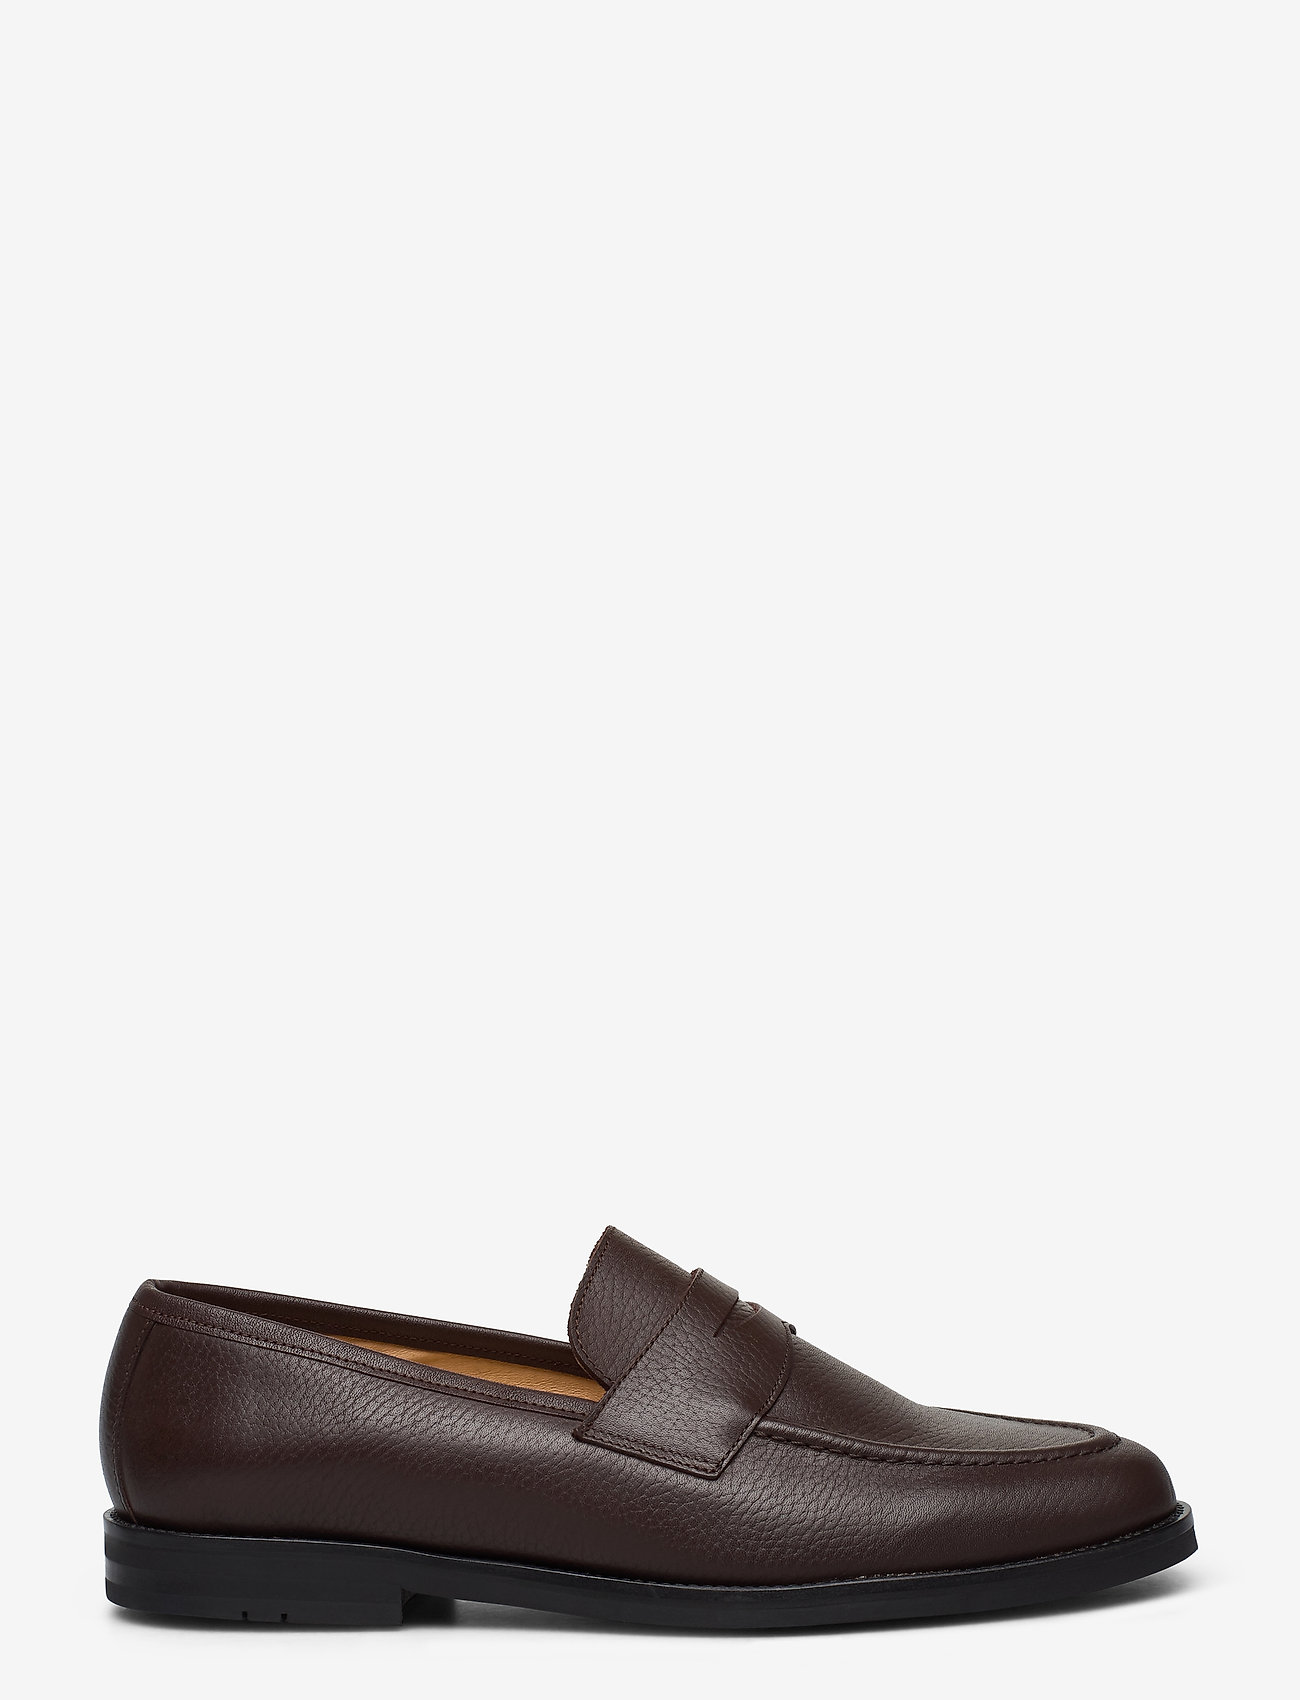 Morris - Morris Penny Loafers - loafers - brown - 1